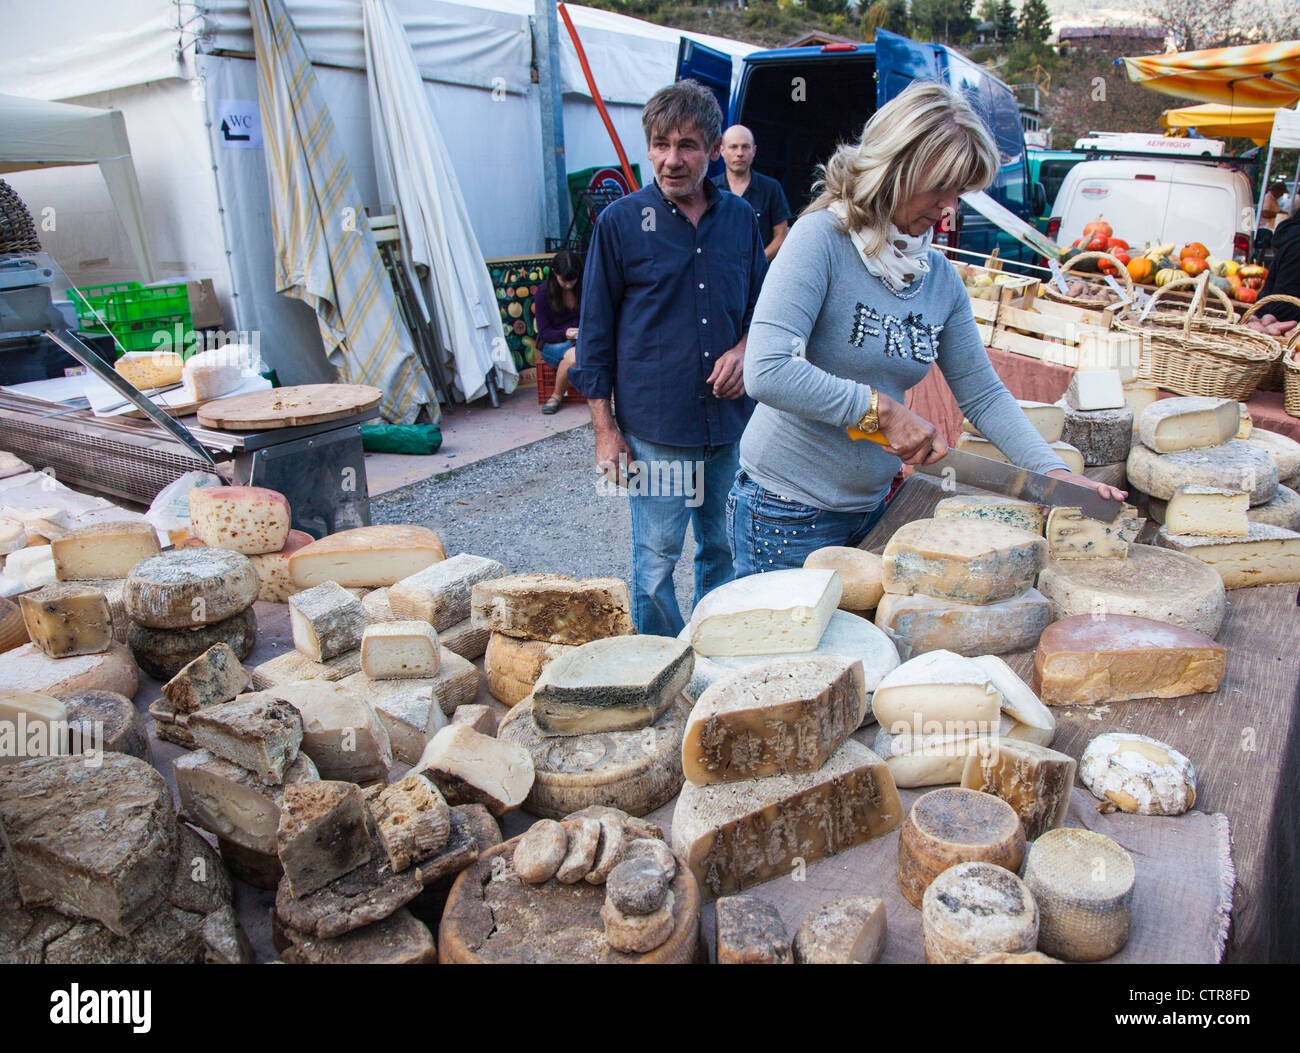 Market stall selling a variety of traditional mountain cheeses for sale in a market in rural Oulx, Piemonte, Italy - Stock Image